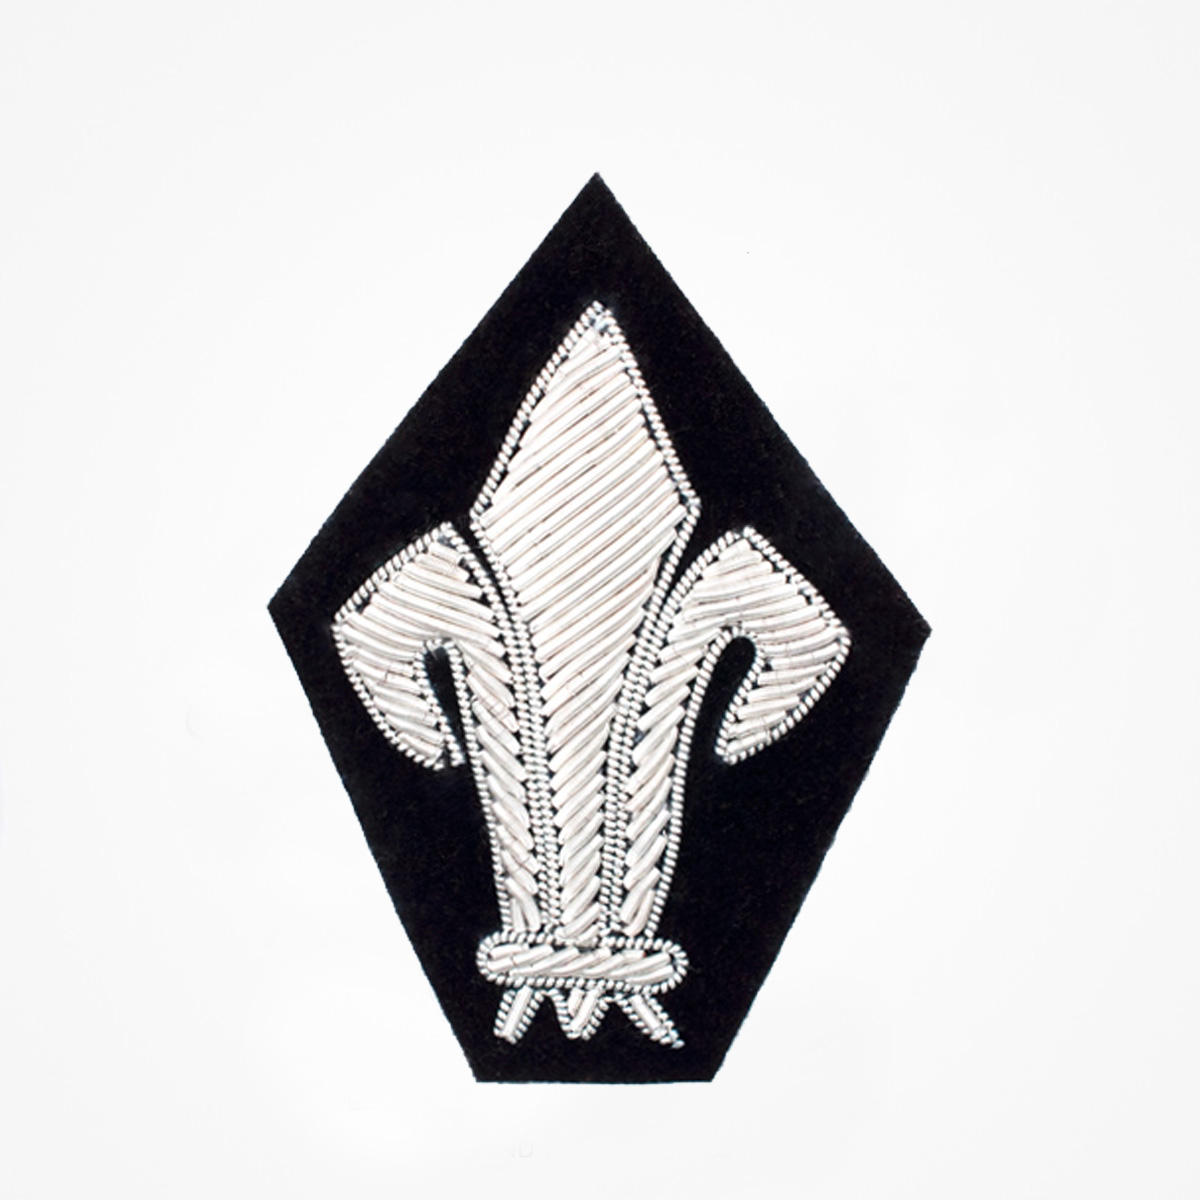 Qg - 3559 - Fashionable 3D embroidered look Made by skilled artisans Bullion wire and silk thread hand Stitched on Black color Felt Available in gold and silver colors Size = 65 mm height 45 mm width sewon backing: Perfect for caps, sports jacket, leather jackets, blazer coat, Blazer Pocket, shirts uniforms, Accessories and many More Pin backing: easy to removable 5